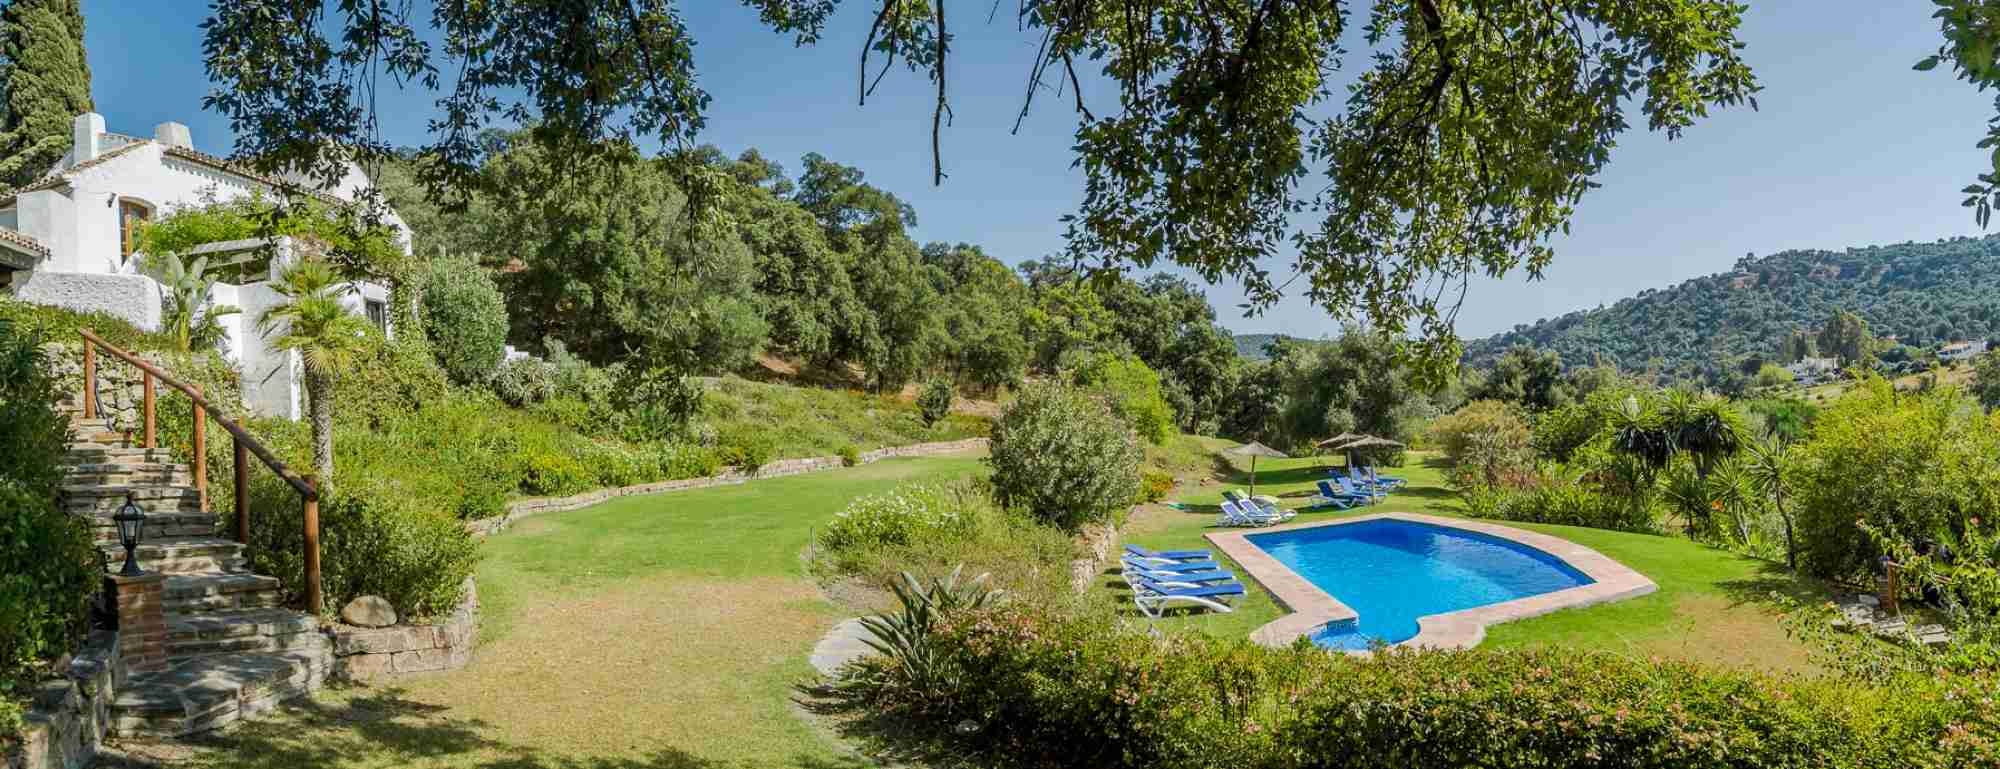 An entire hacienda in the warm climate of a green Andalucia coastal valley